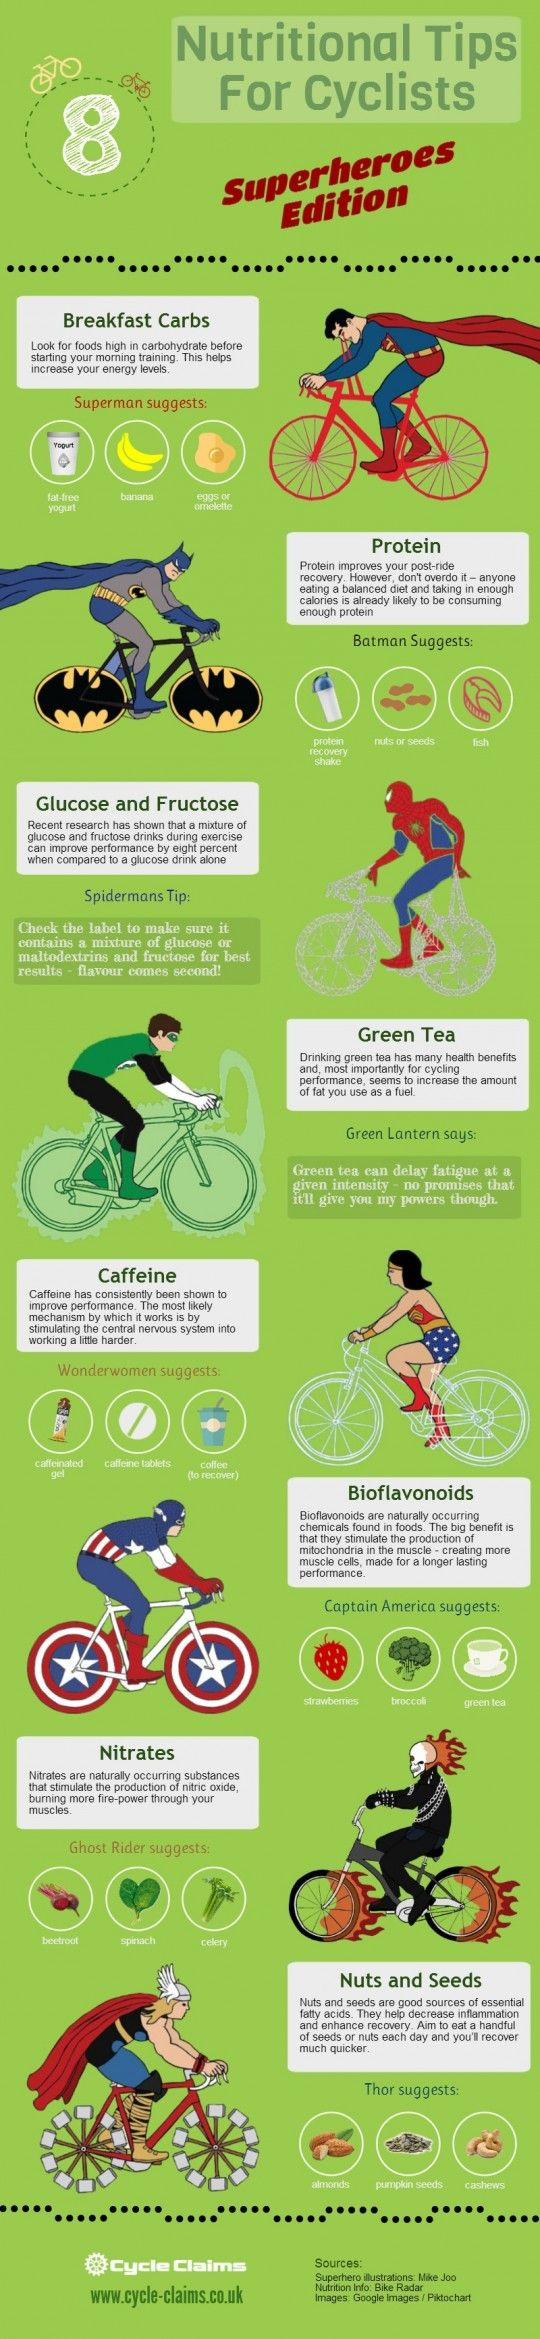 8 Nutritional Tips For Cyclists